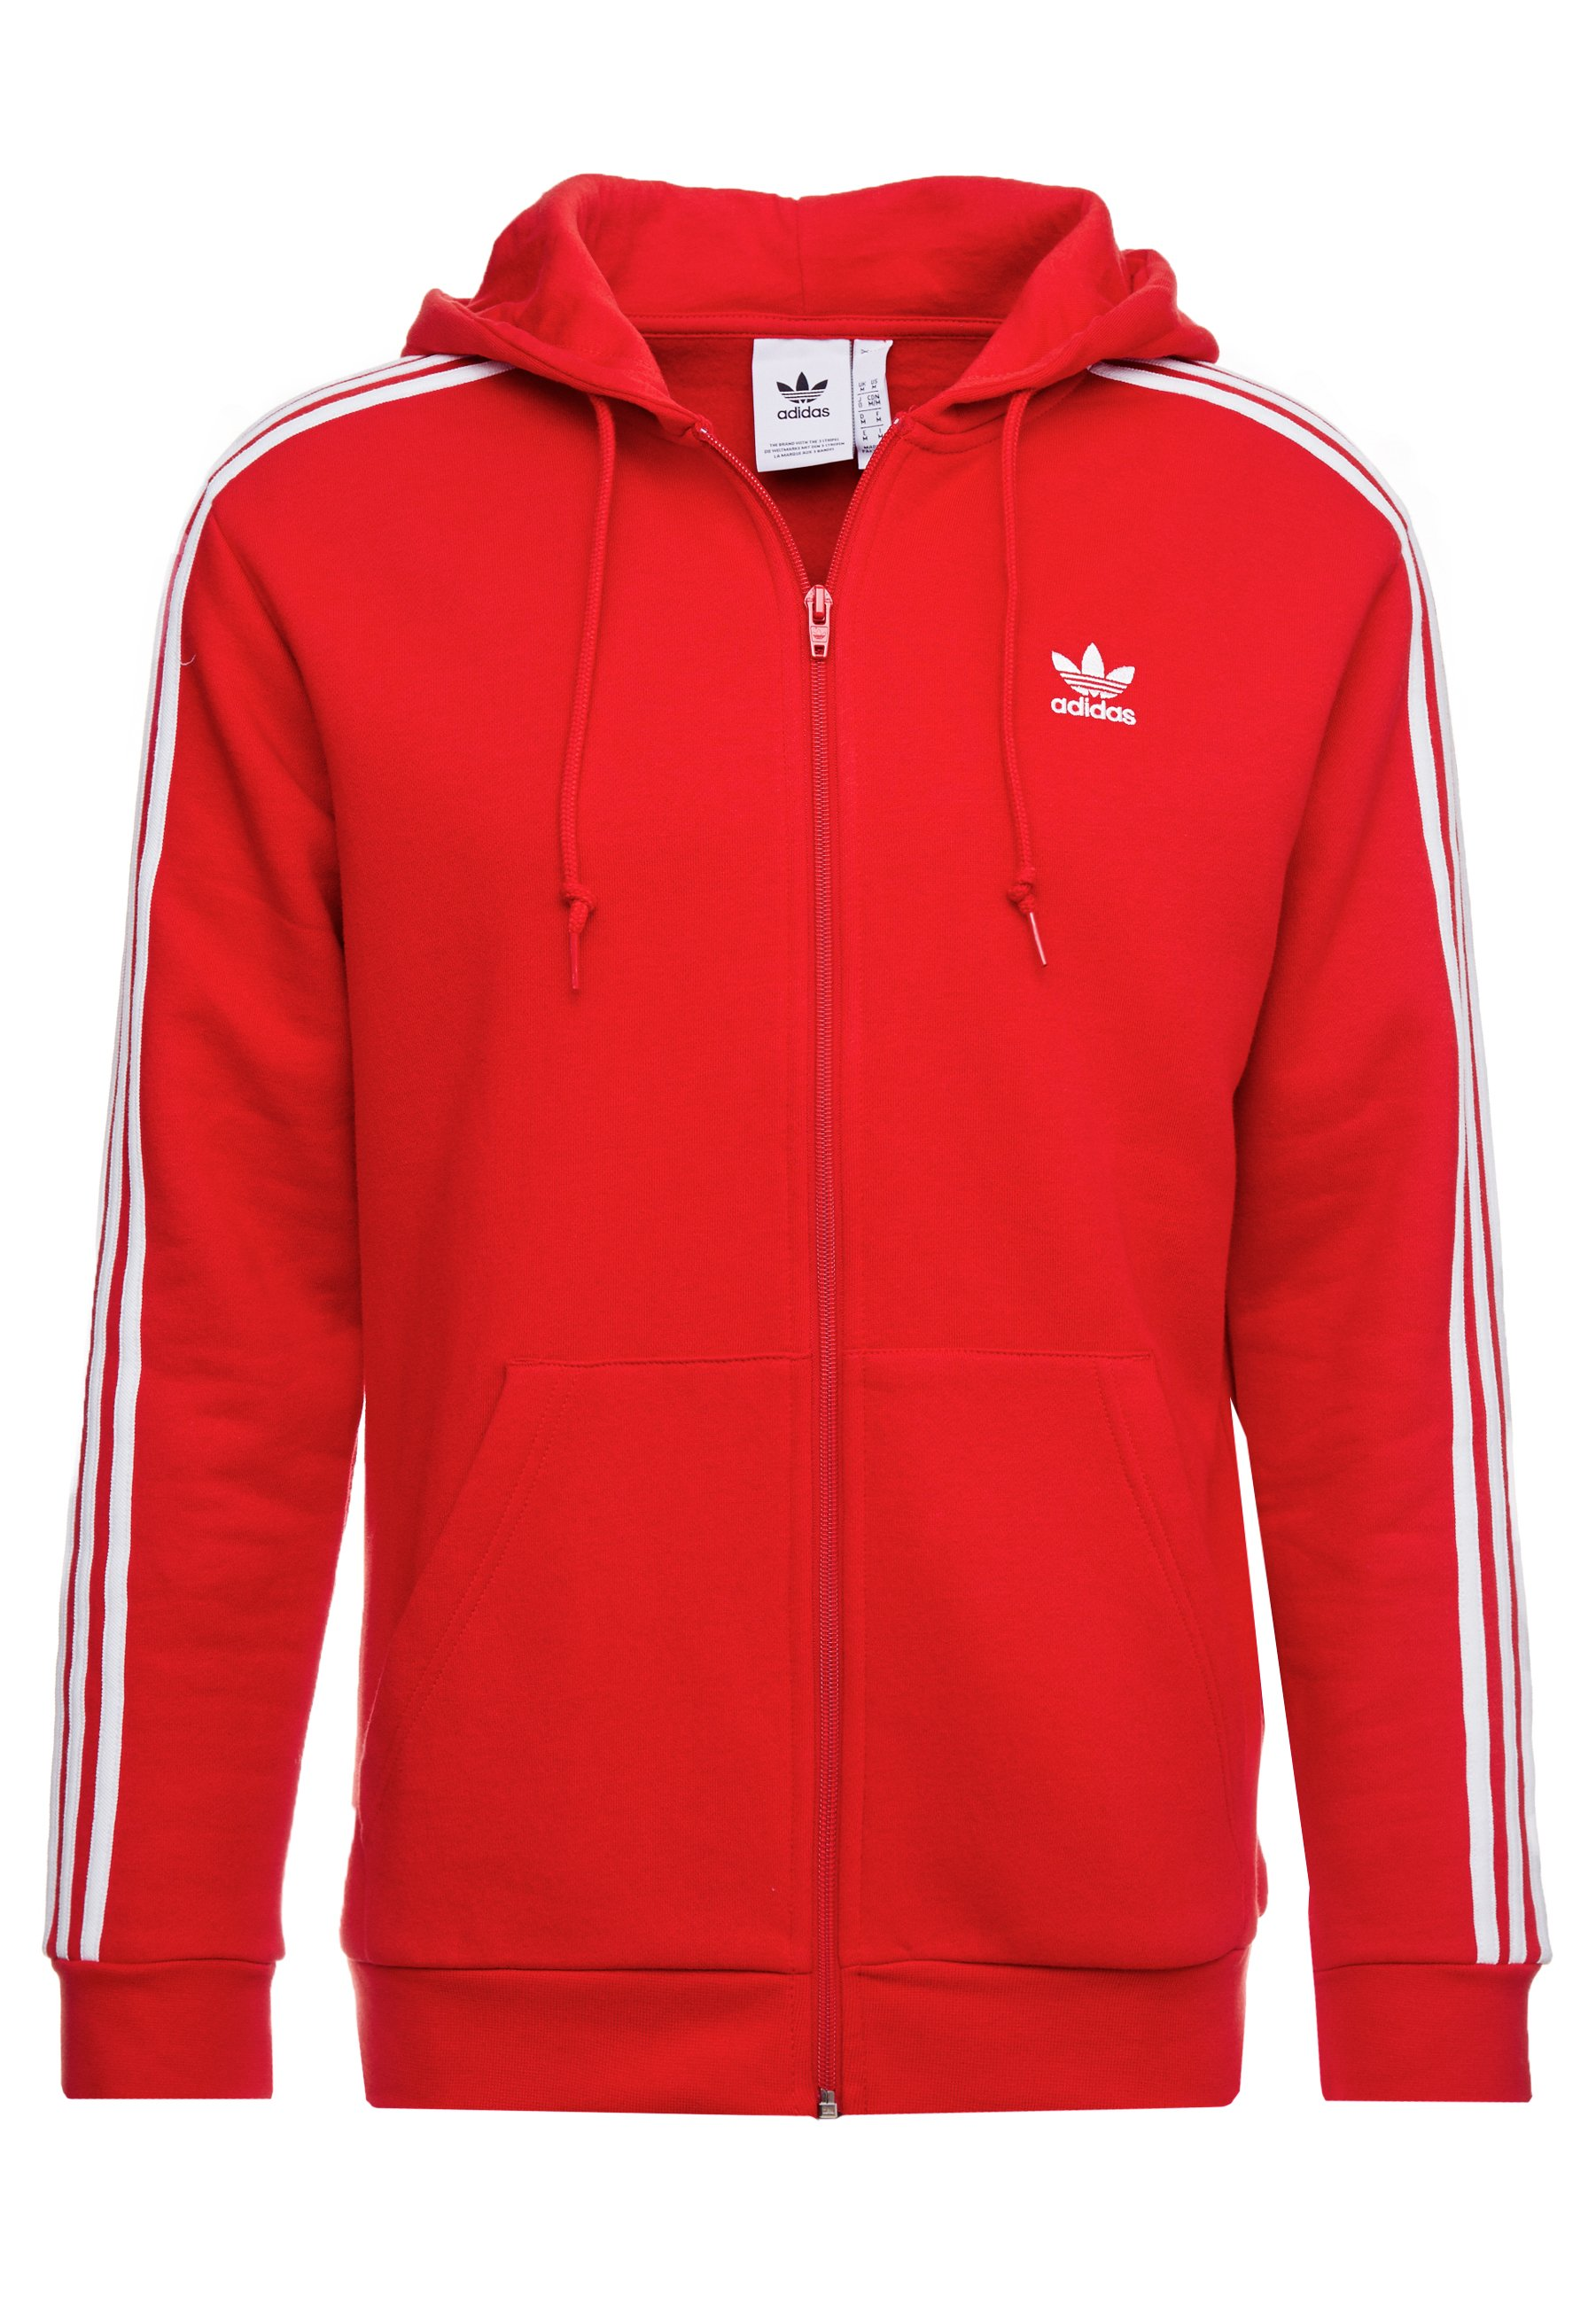 Sweatjacken und Sweatshirts adidas Originals 3 Stripes FZ